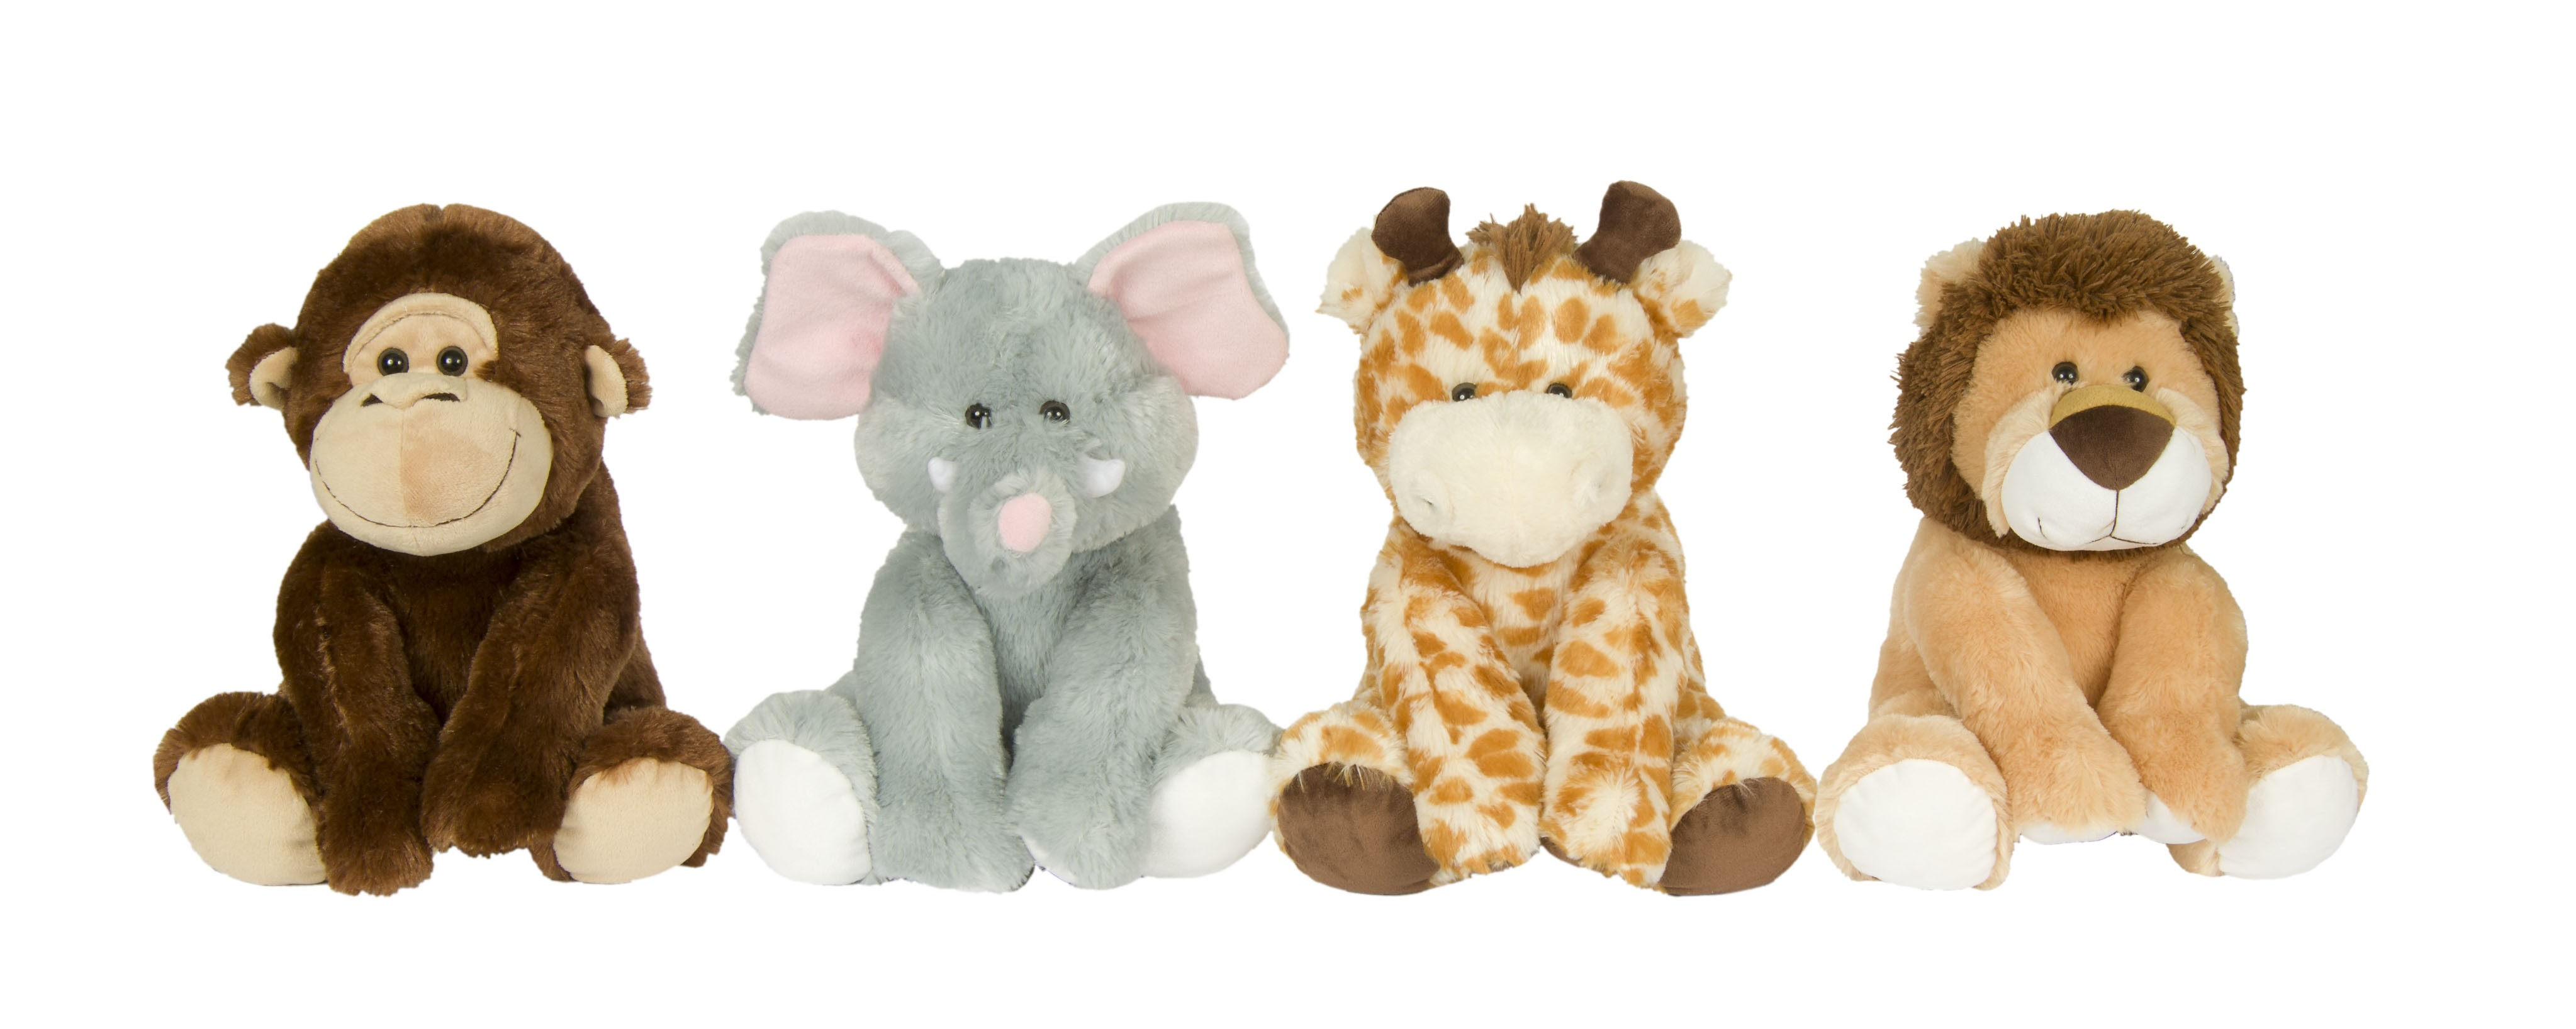 List Of Synonyms And Antonyms Of The Word Jungle Stuffed Animals